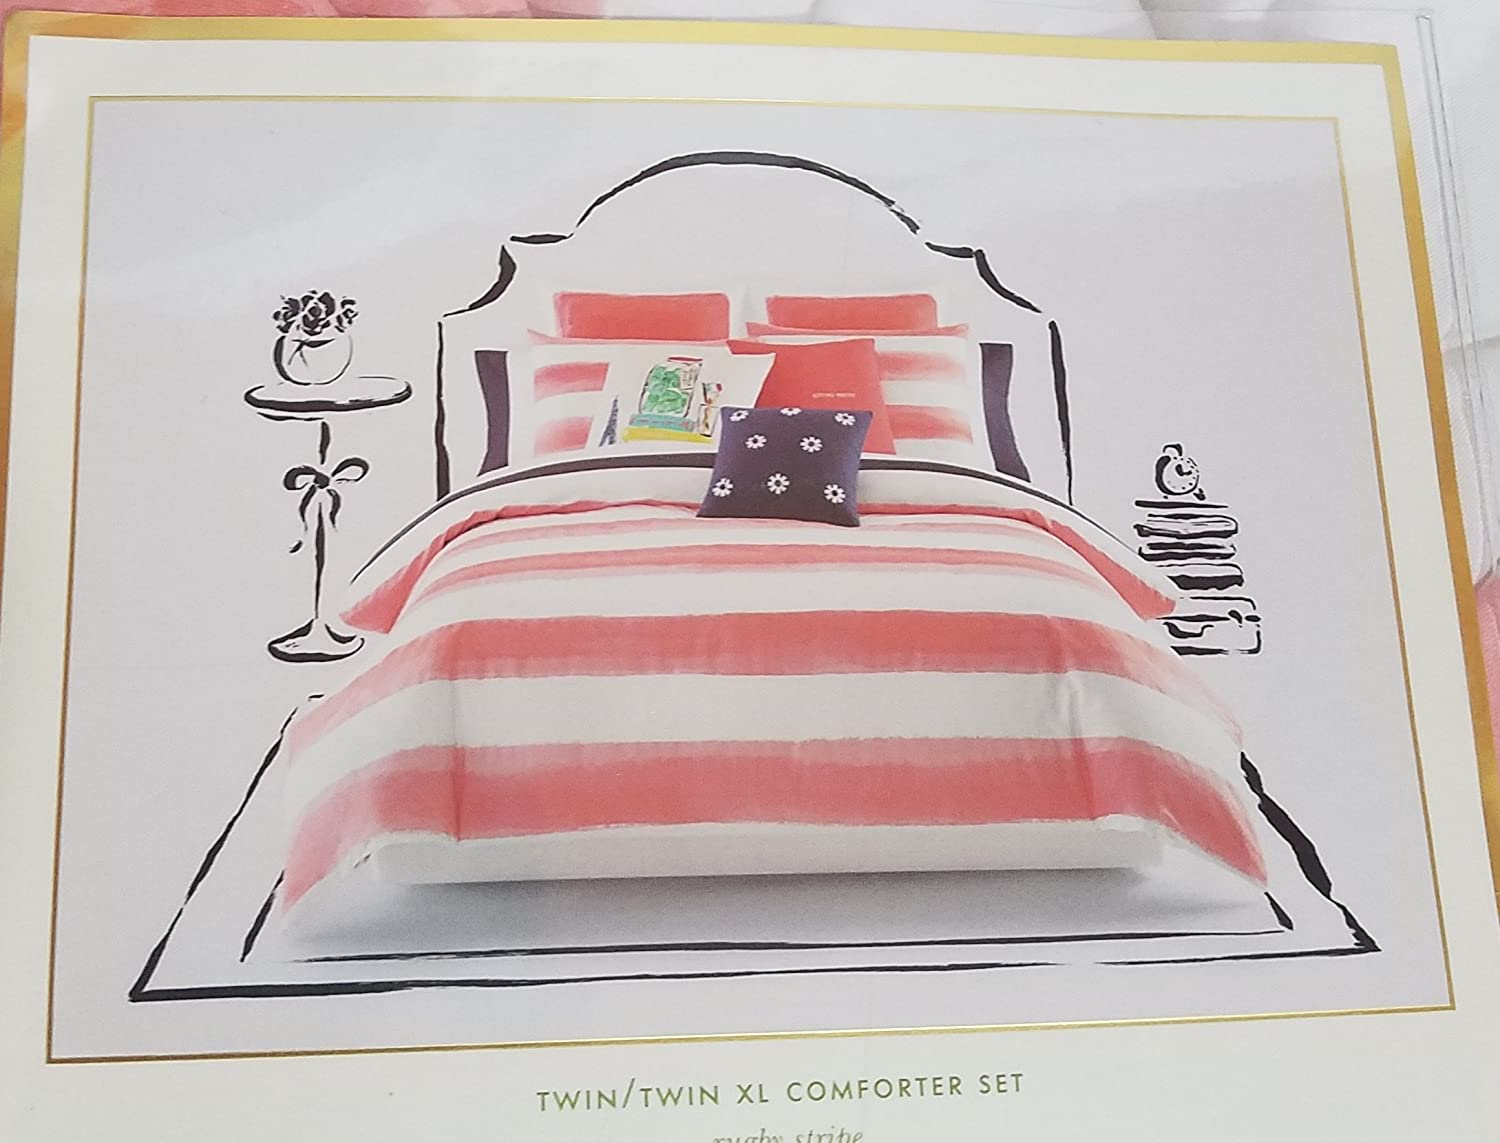 Kate Spade Rugby Stripe Comforter Set, Twin/Twin XL, Coral